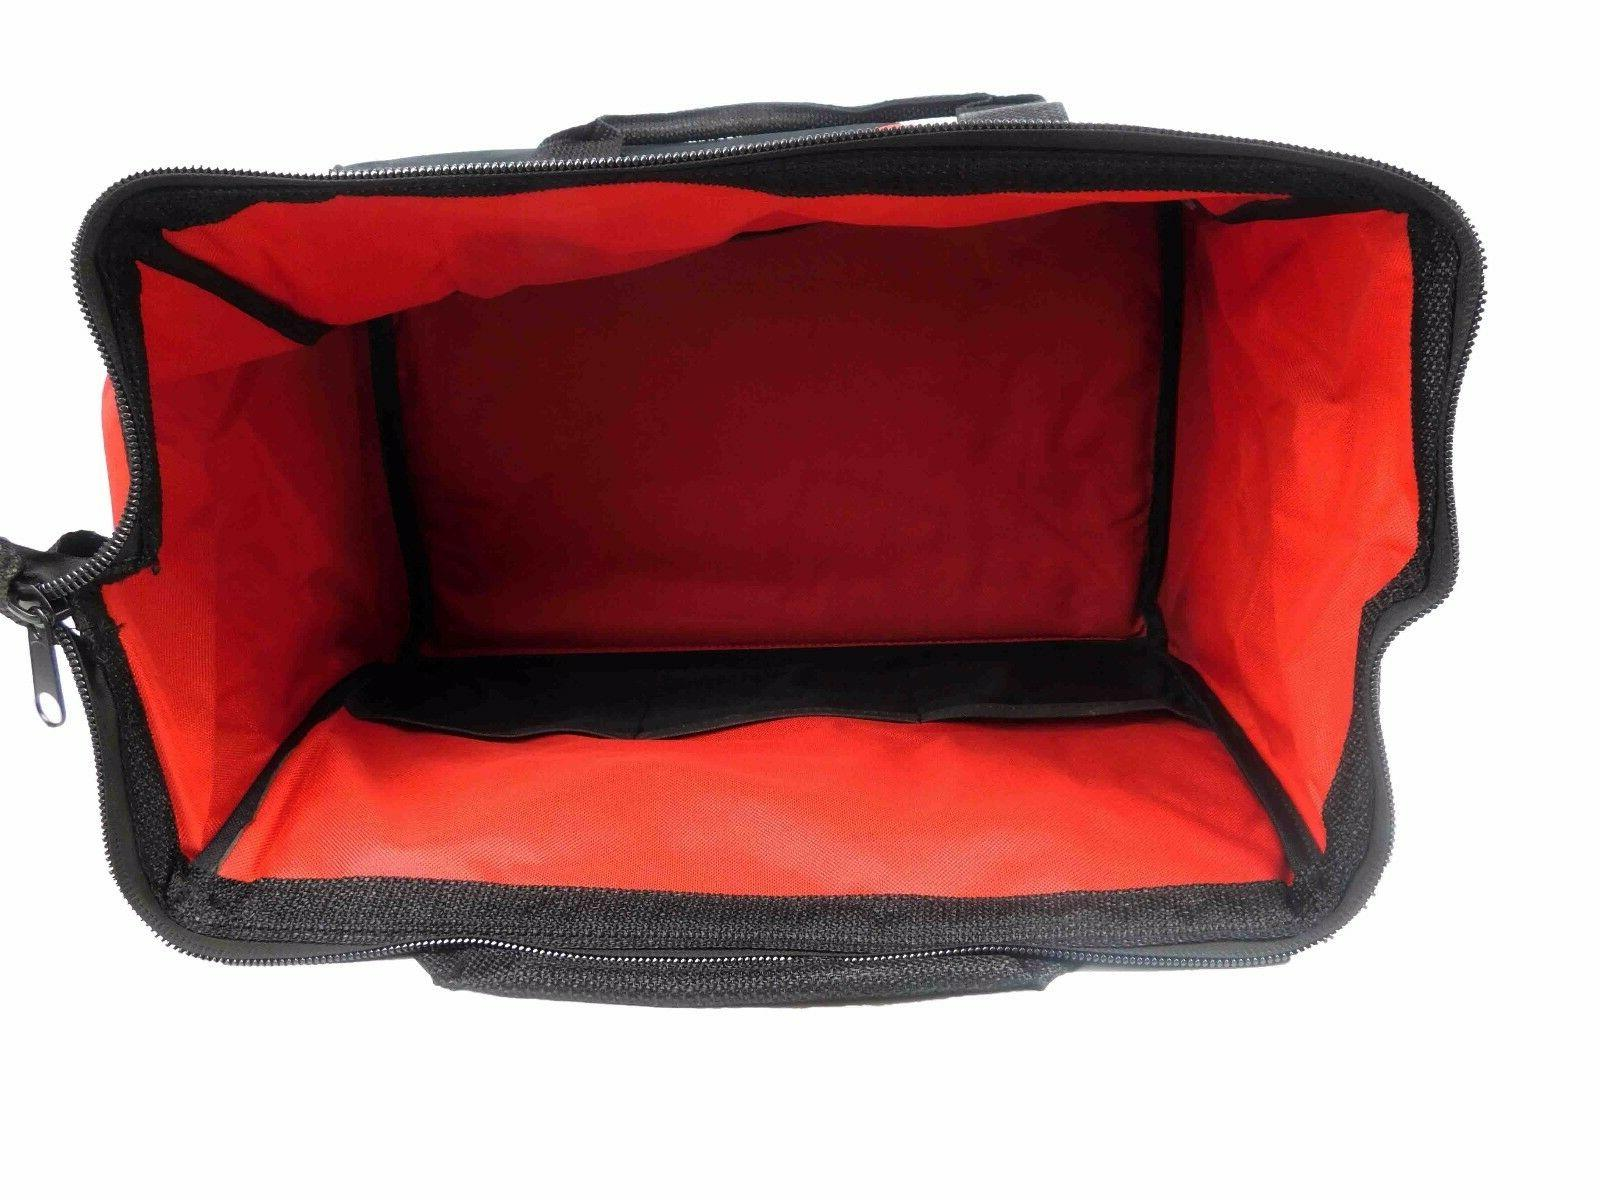 Milwaukee 16-Inch Duty Canvas Tool Bag